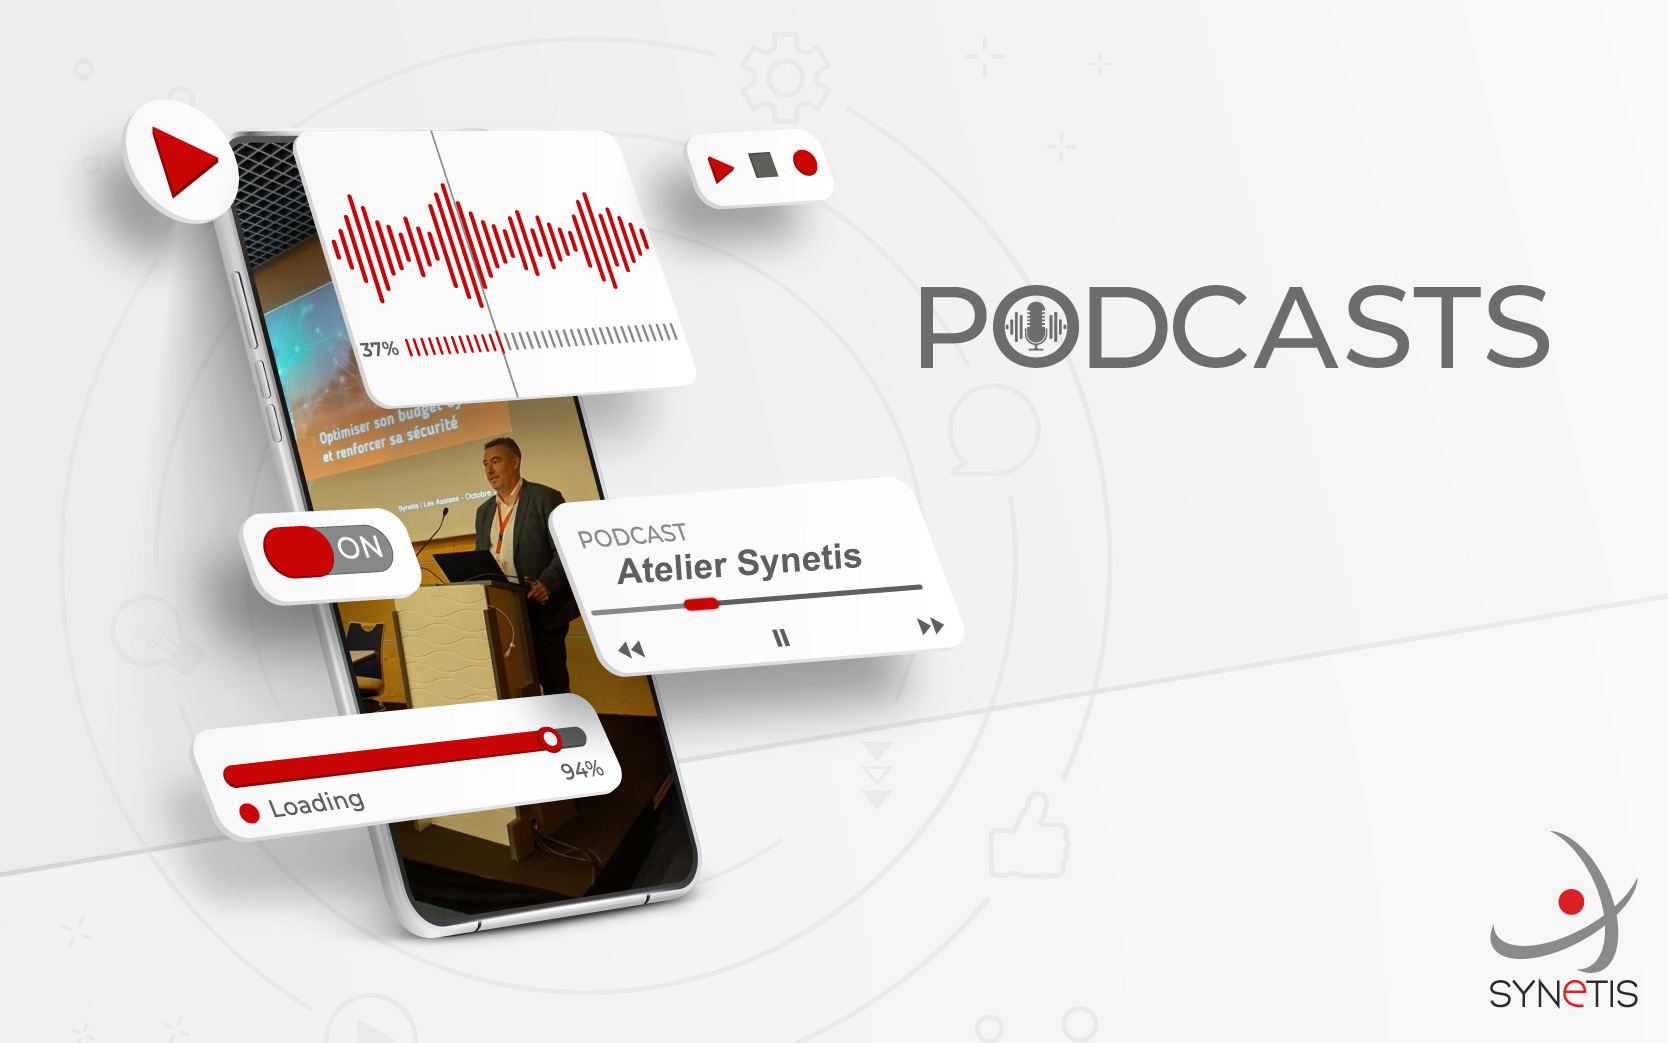 podcasts-synetis-01